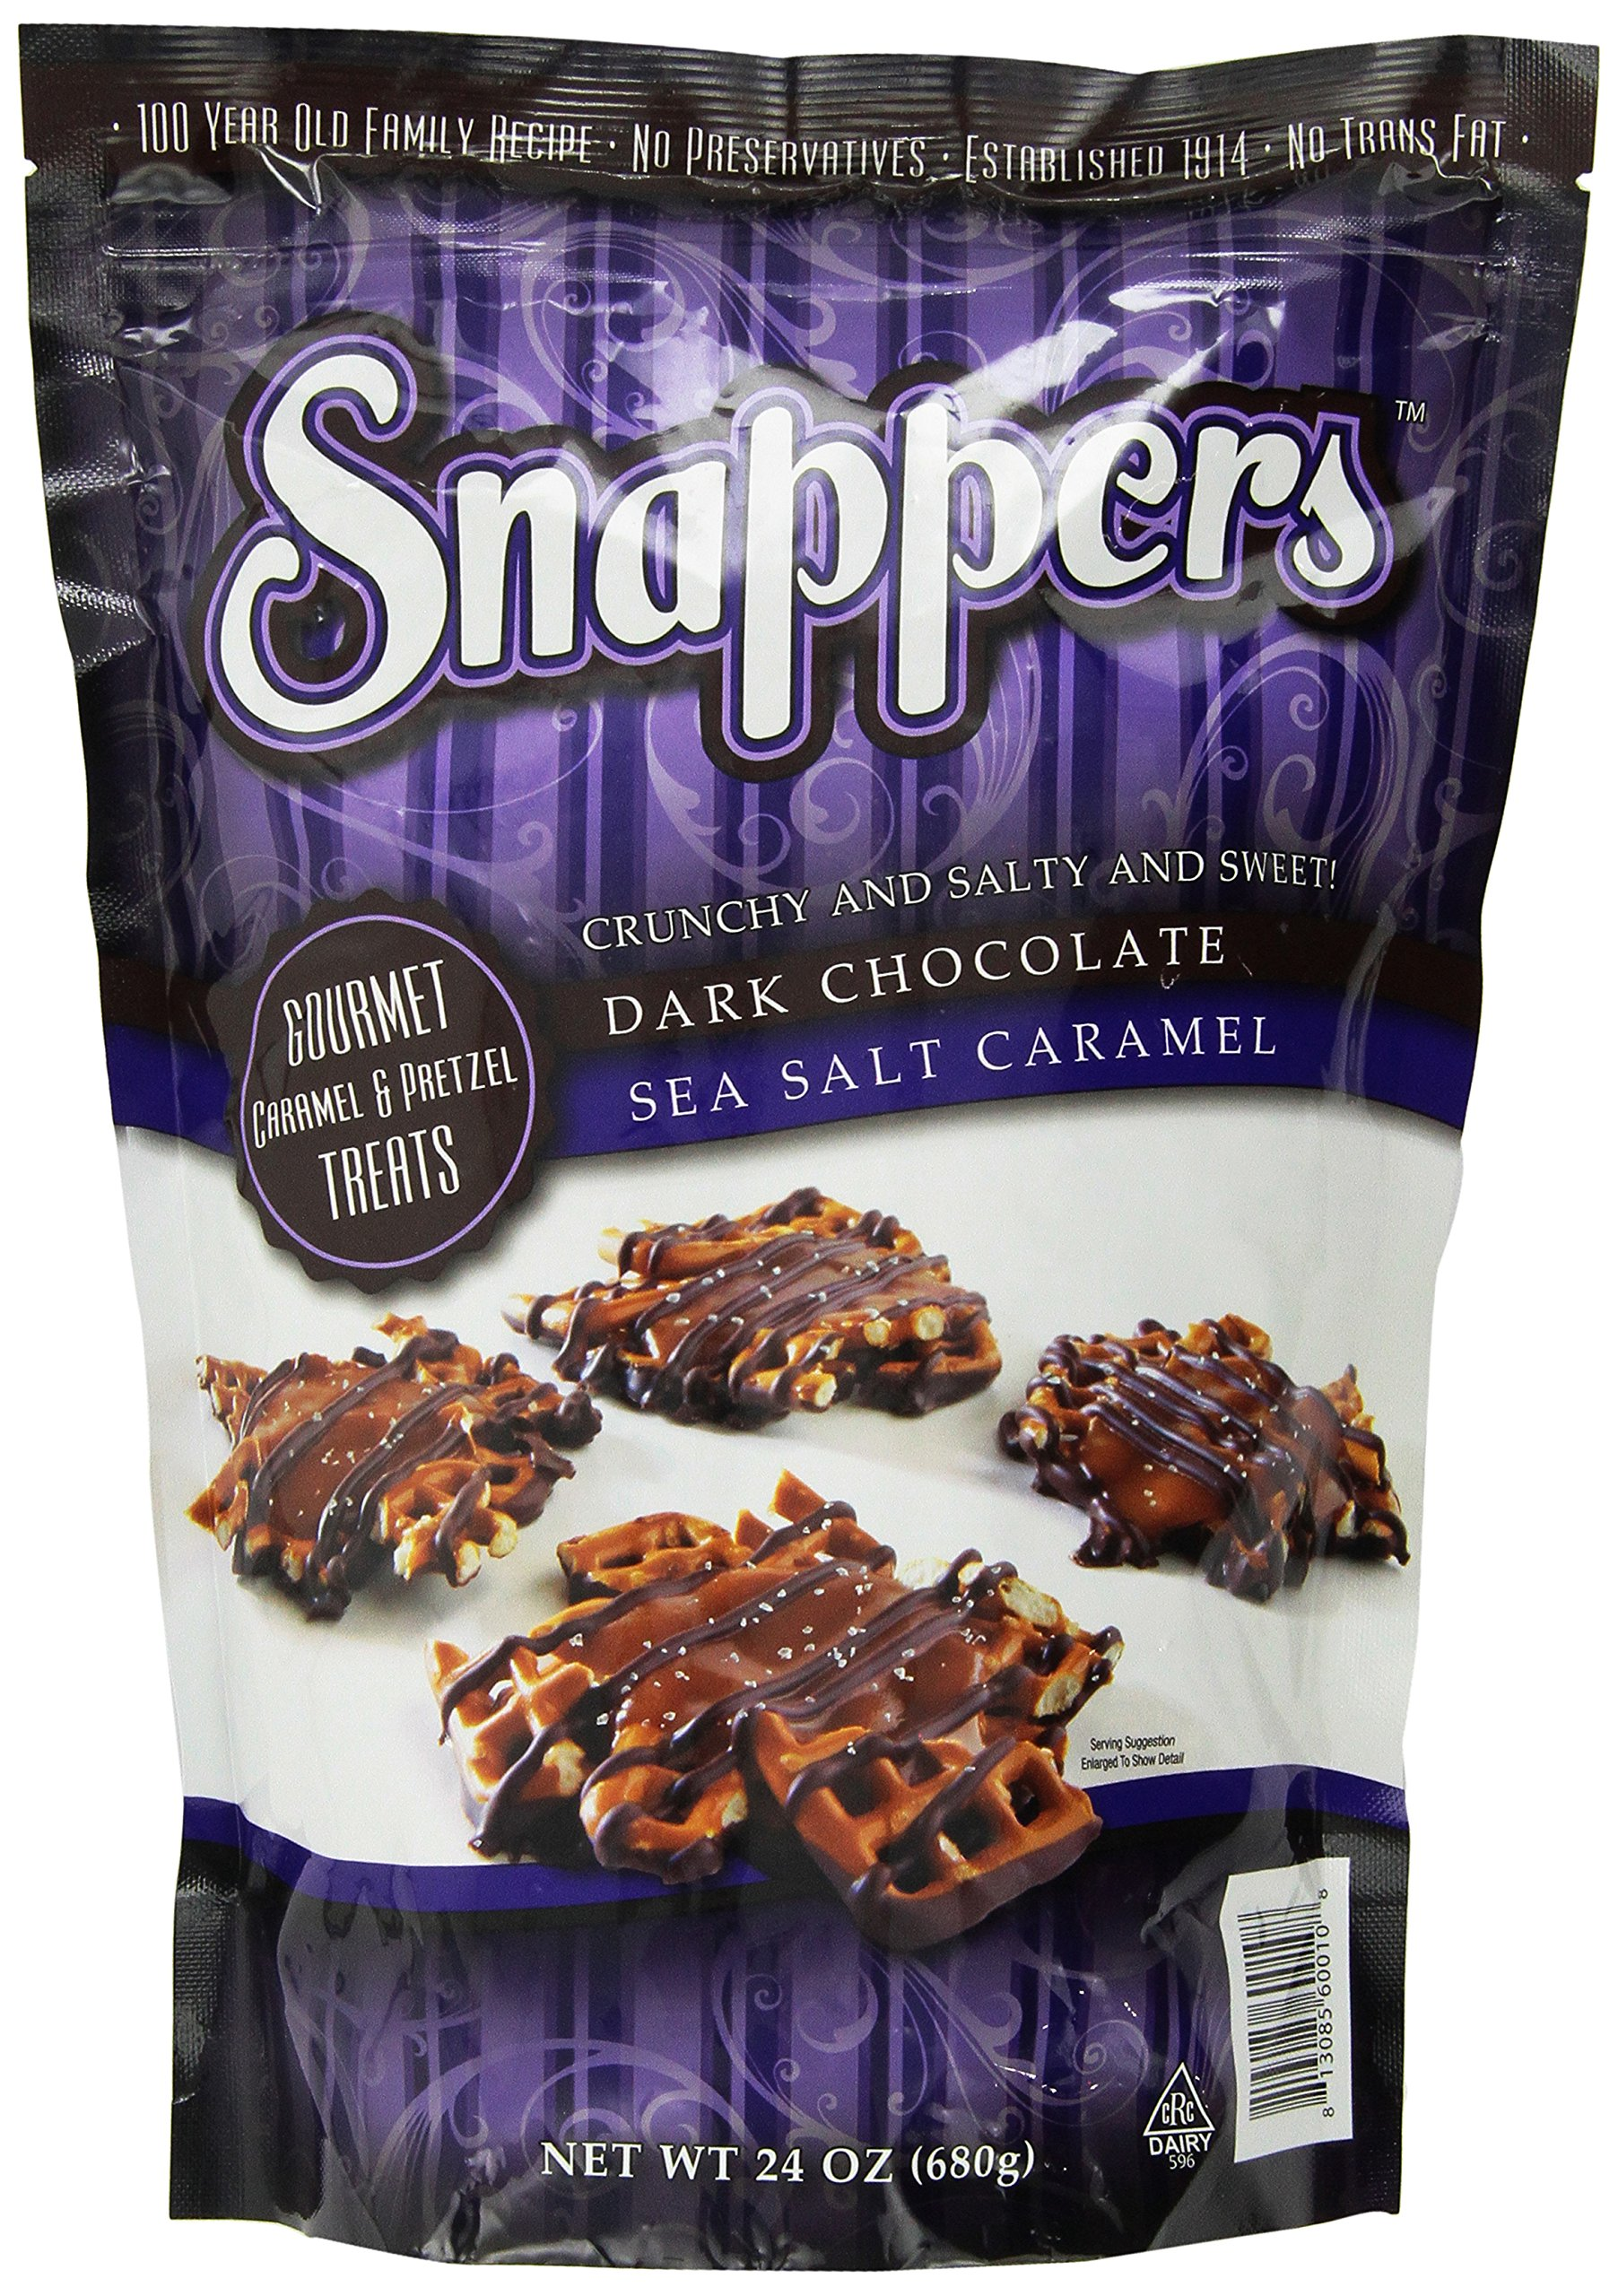 Snappers Gourmet Caramel 6 Pretzels Treats Crunchy, Salty, Sweet, Dark Chocolate, Sea Salt Caramel 24 Oz. (Pack of 3) by Snappers Gourmet